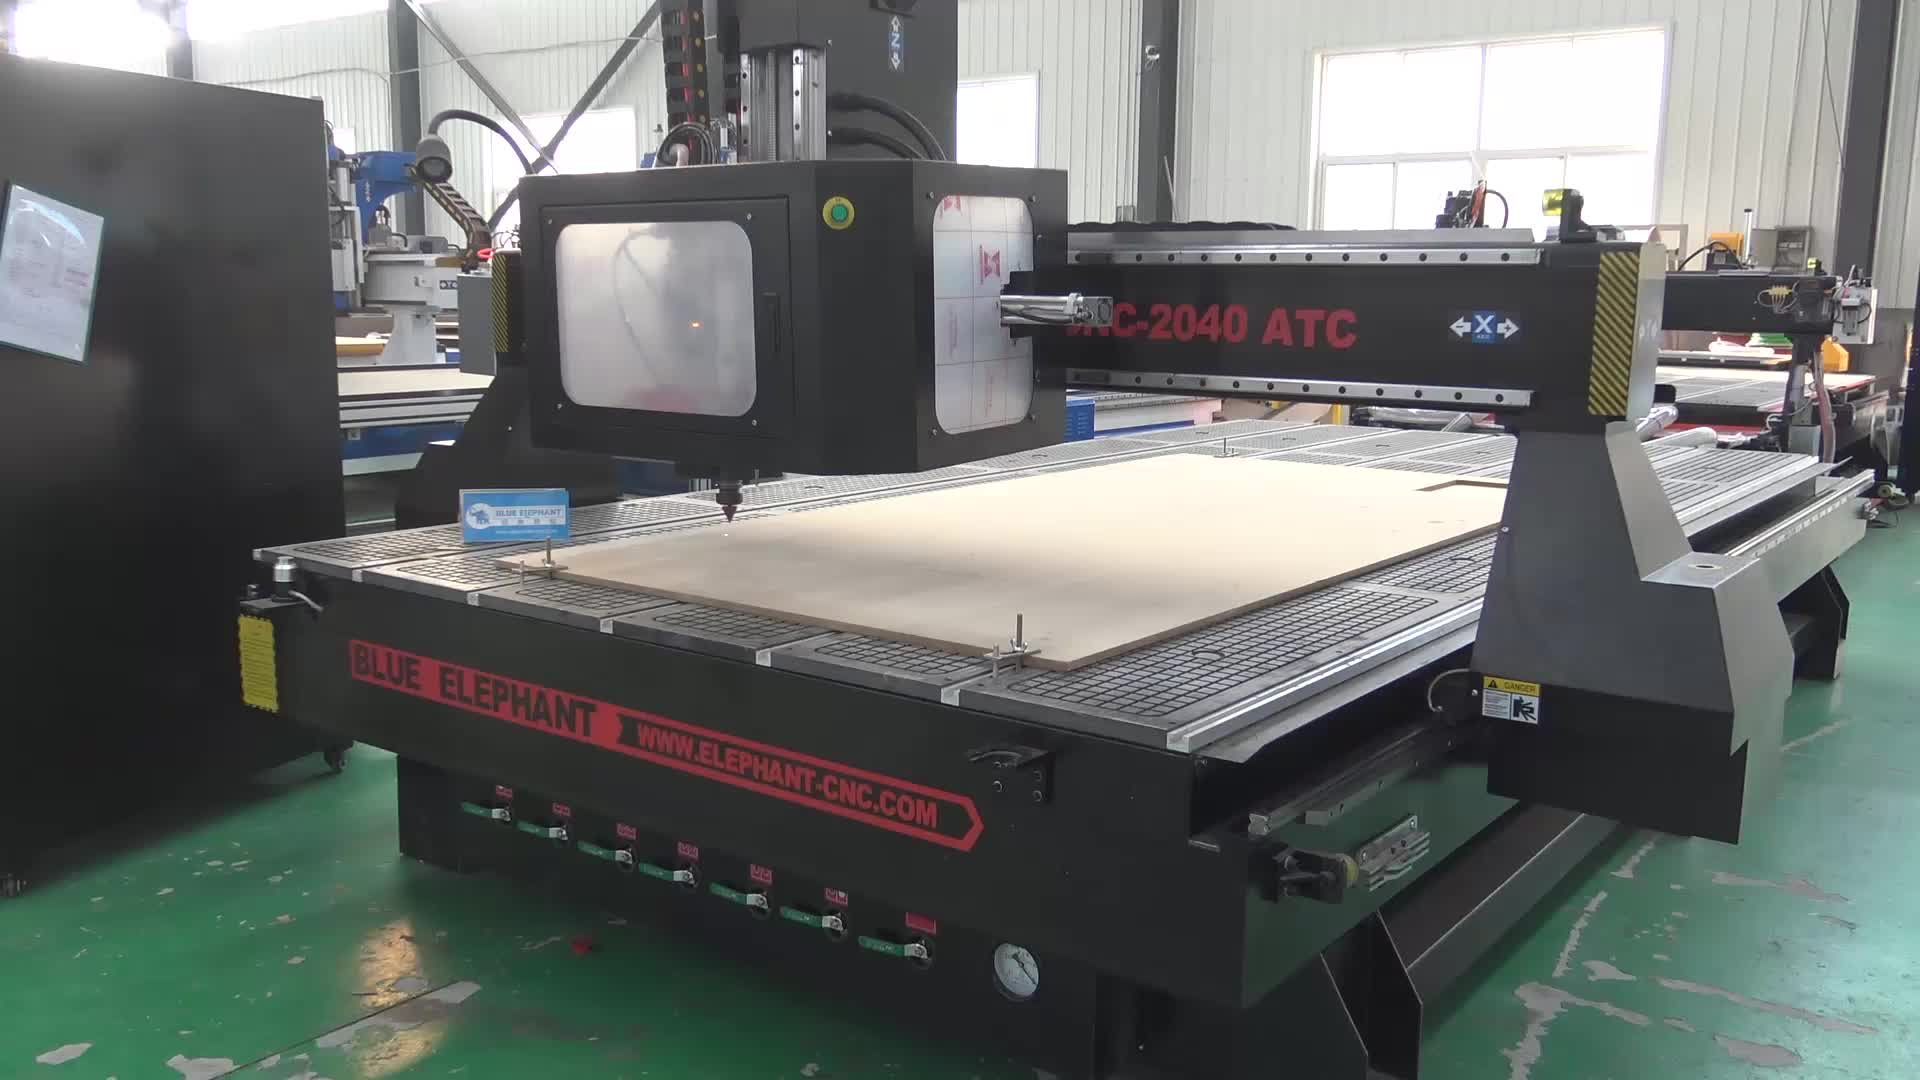 Jinan Manufacturing wood router cnc machine sale in dubai , woodworking cnc router machine ele 2040 for hot sale